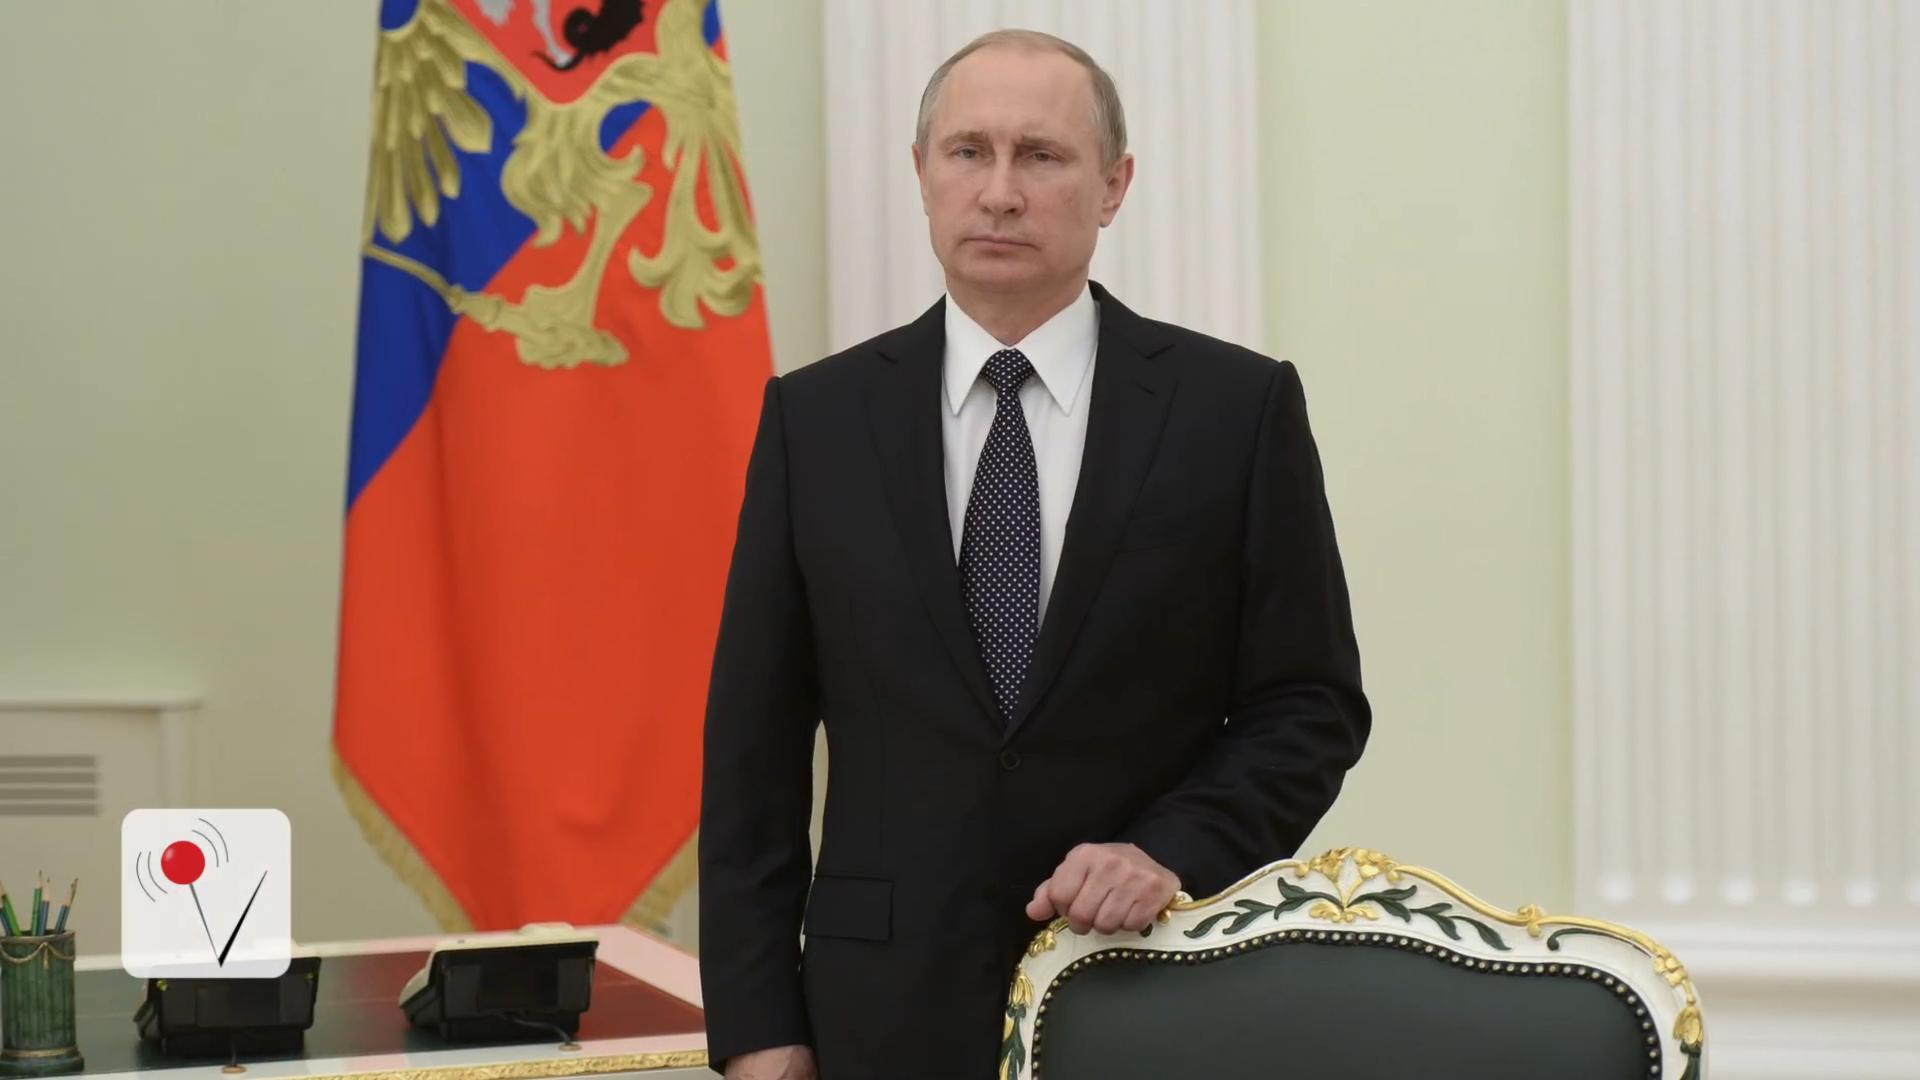 The DNC Email Hack and Why Vladimir Putin Hates Hillary Clinton